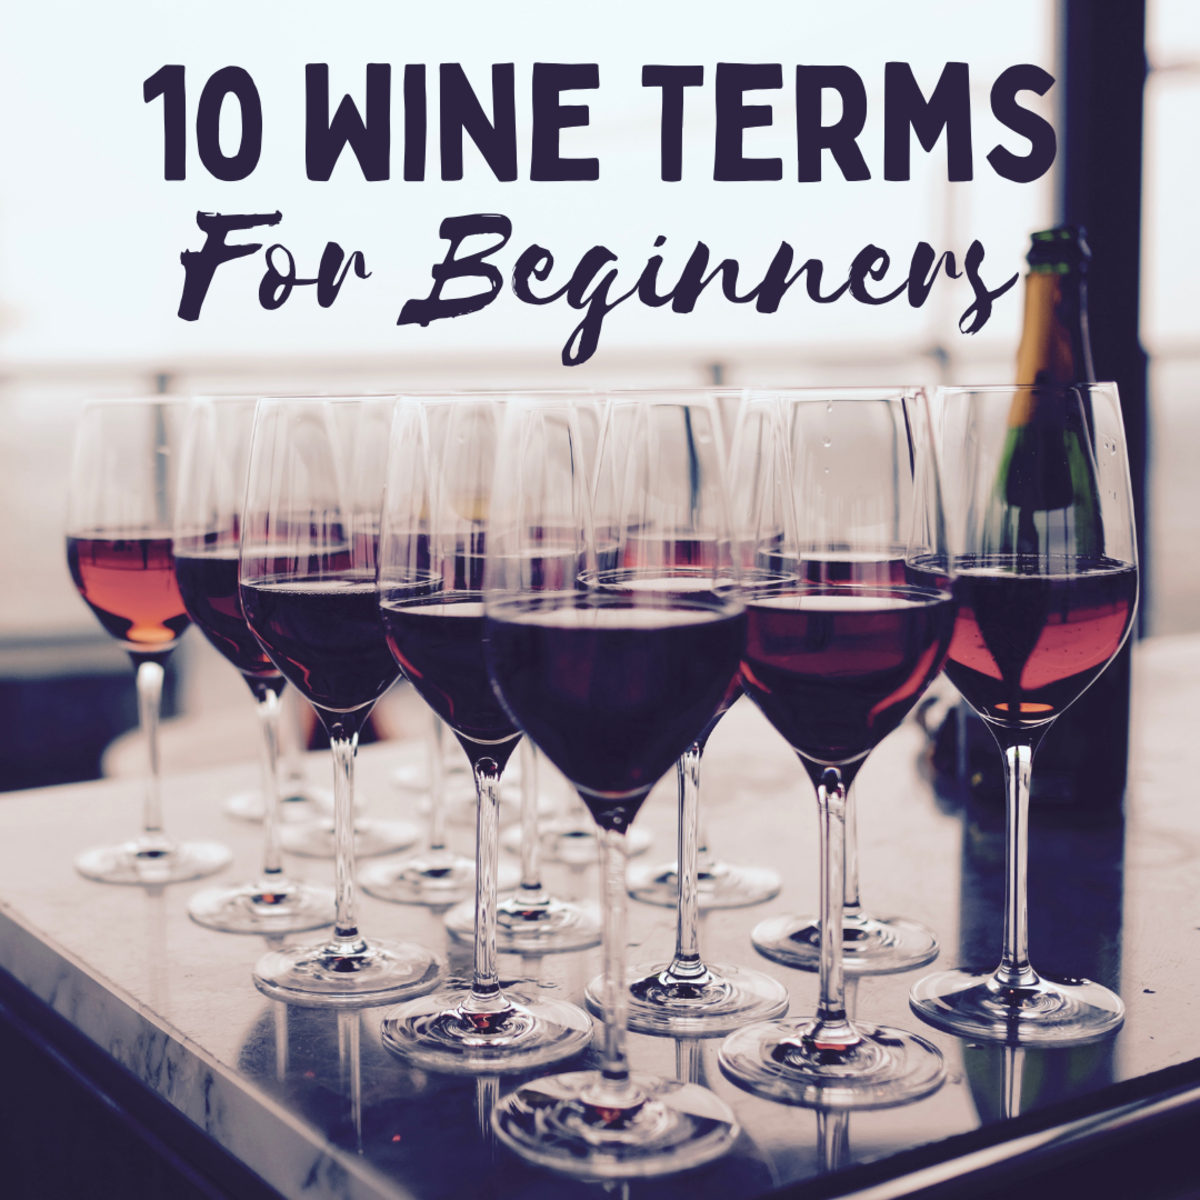 10-wine-tasting-terms-that-every-wine-lover-should-know